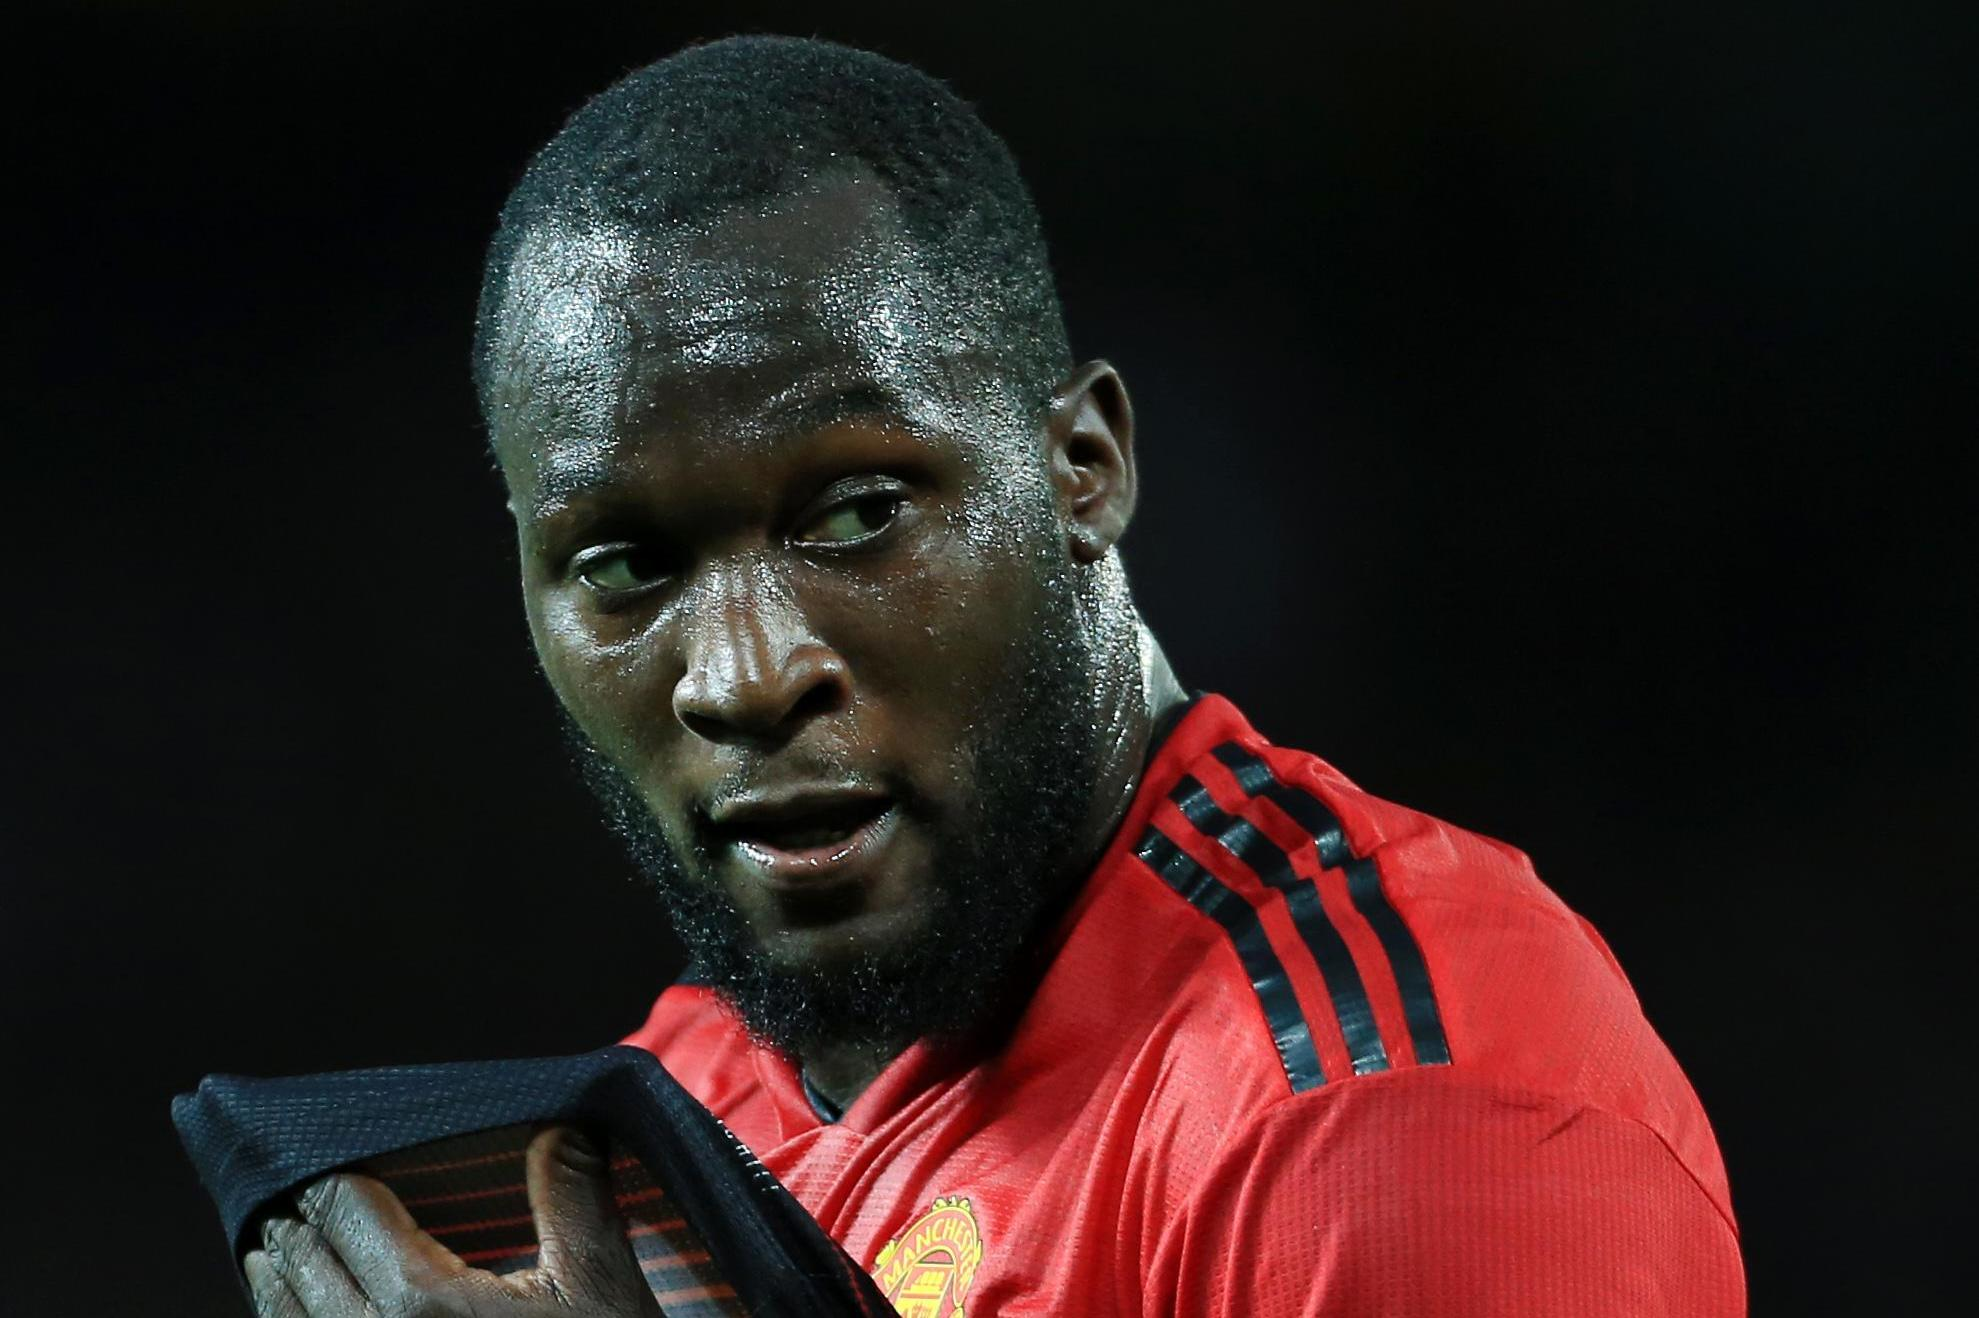 Manchester United striker Romelu Lukaku has signed with football agent Federico Pastorello